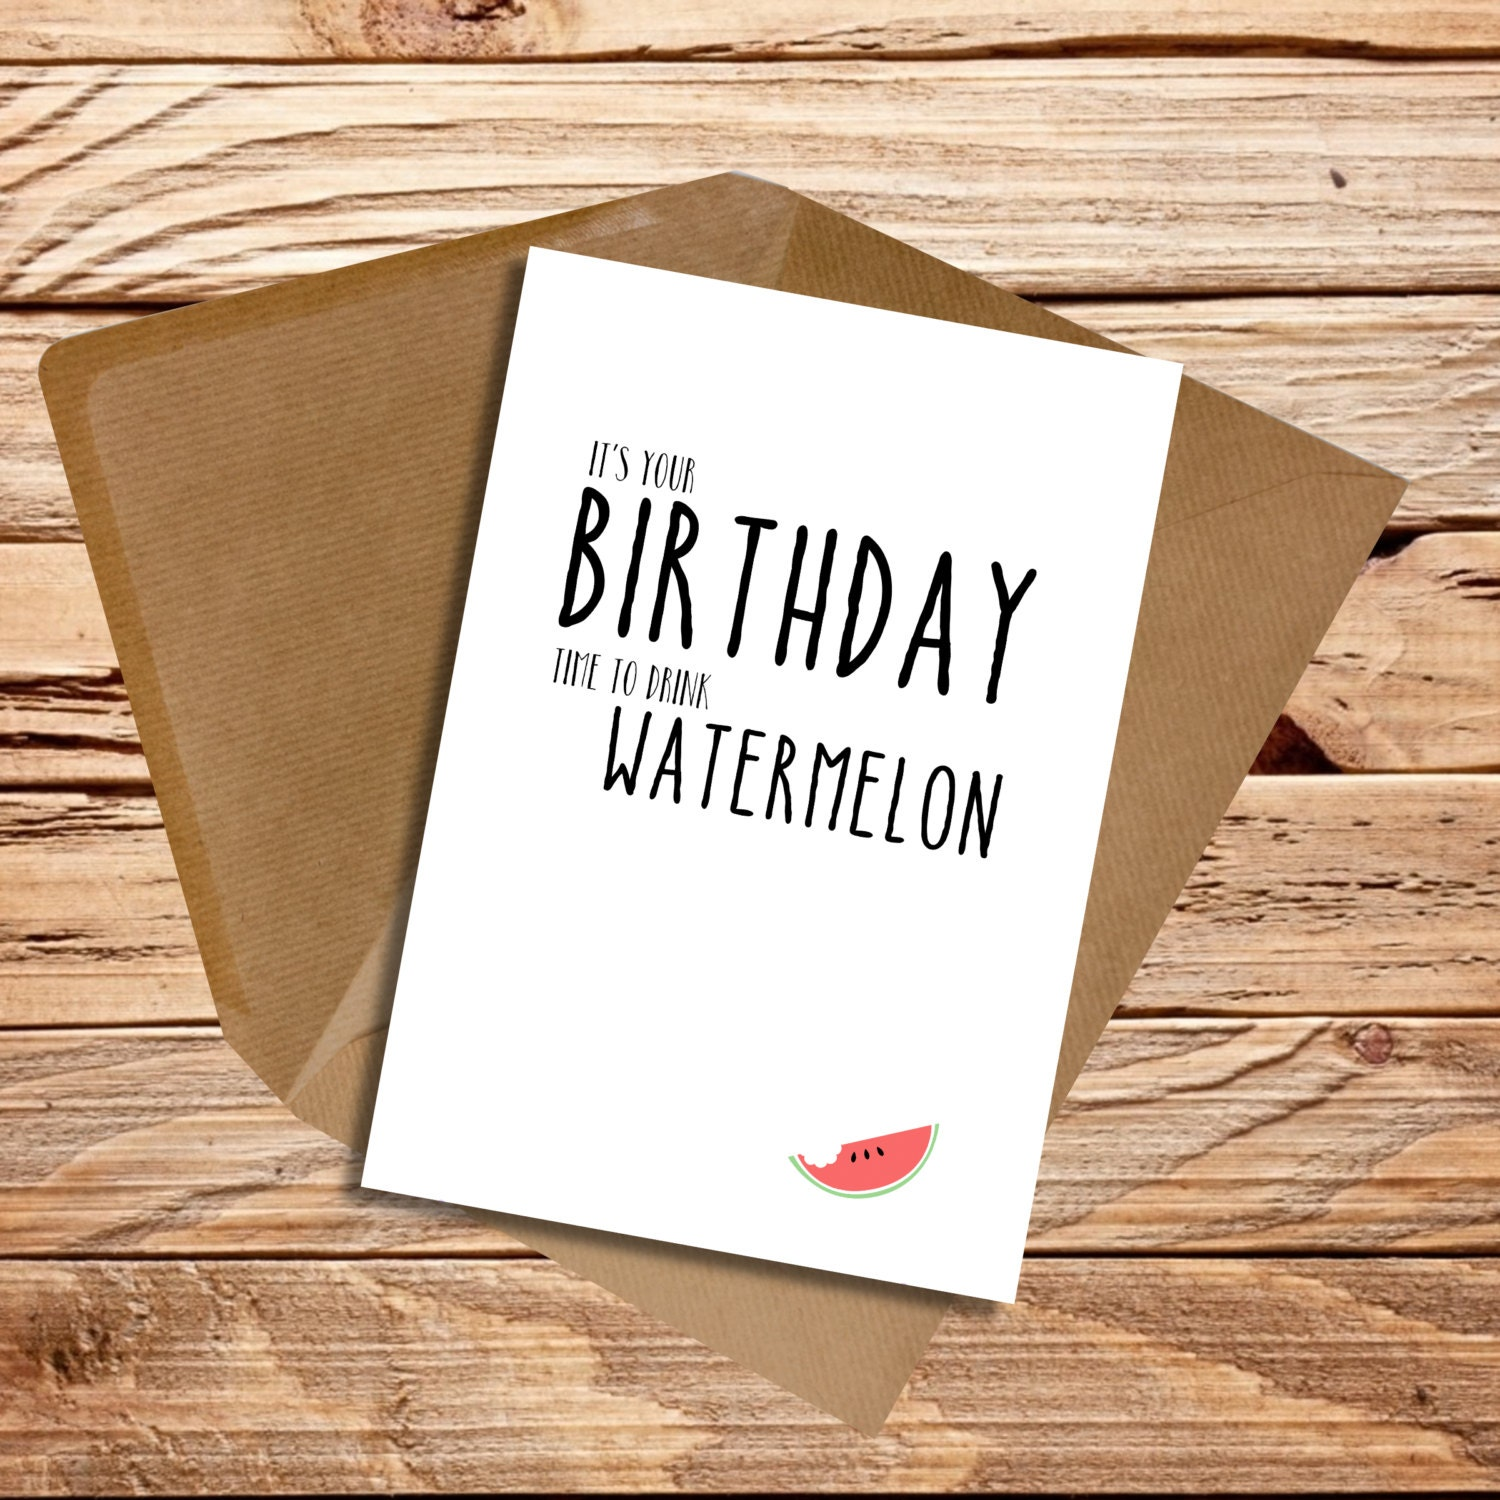 Lovely happy birthday cards for husband pics laughterisaleap funny birthday card husband wife girlfriend boyfriend friend bookmarktalkfo Choice Image